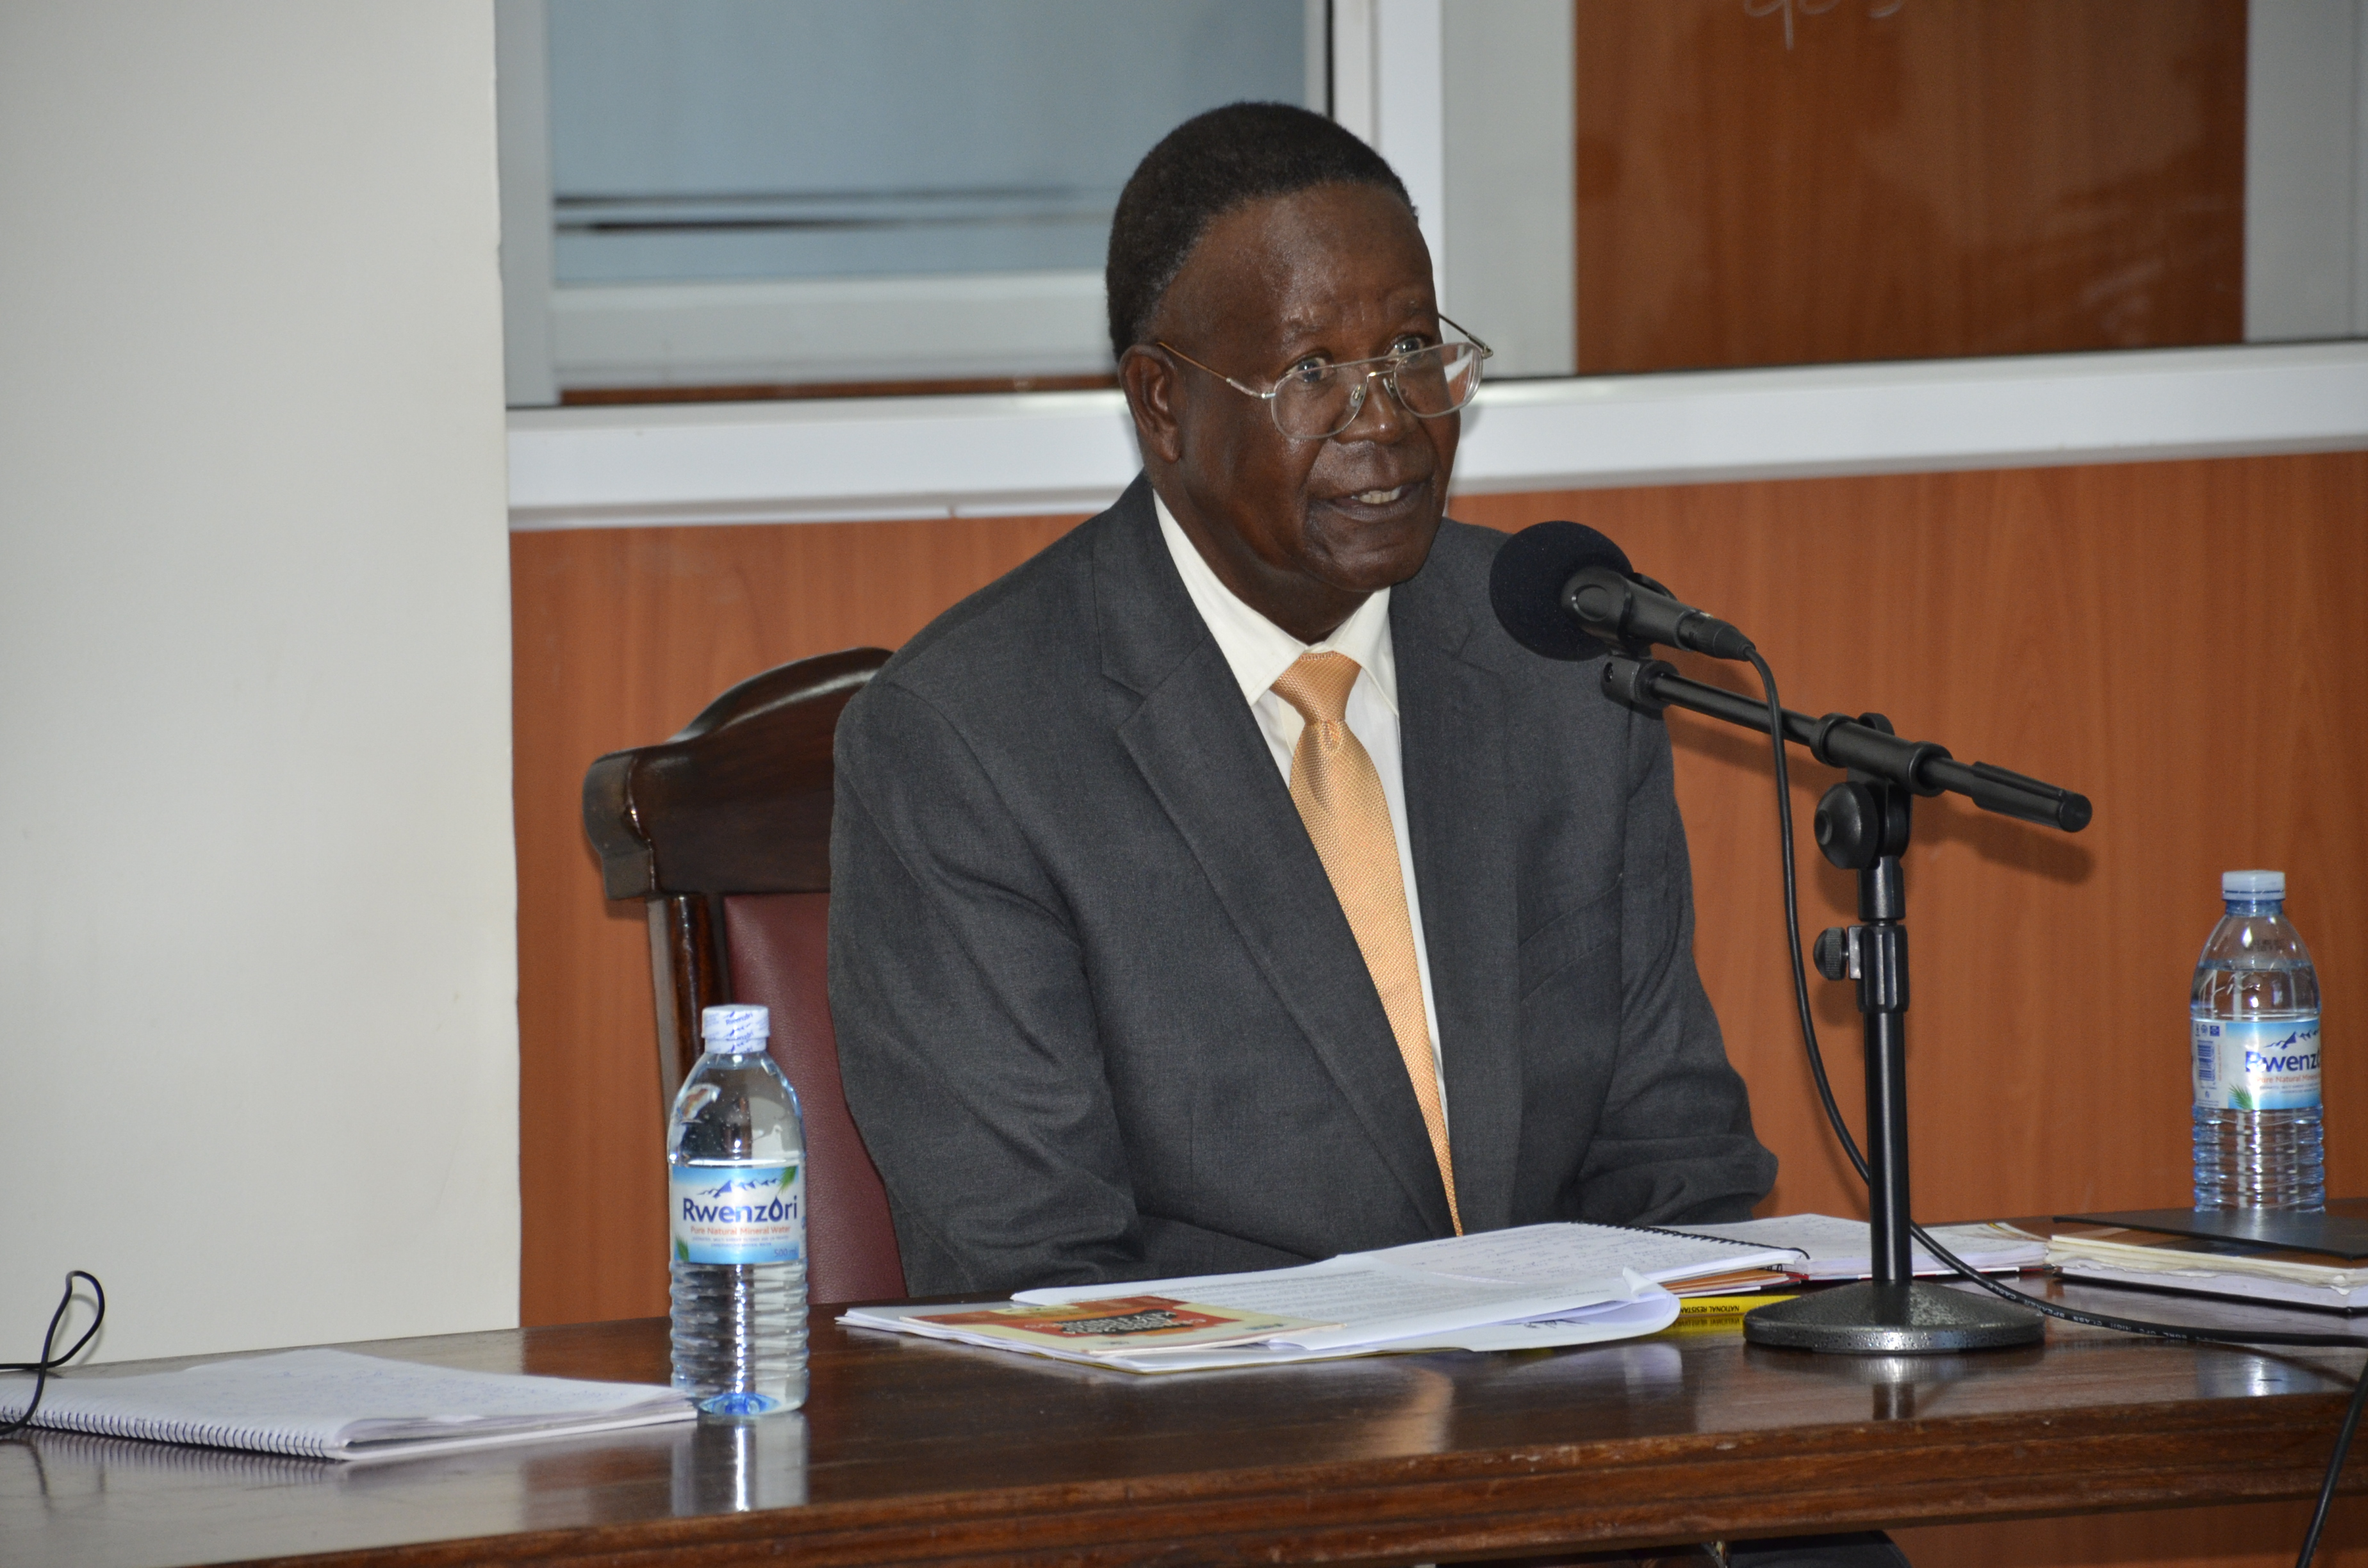 Minister Kamuntu testifying before the land inquiry commission